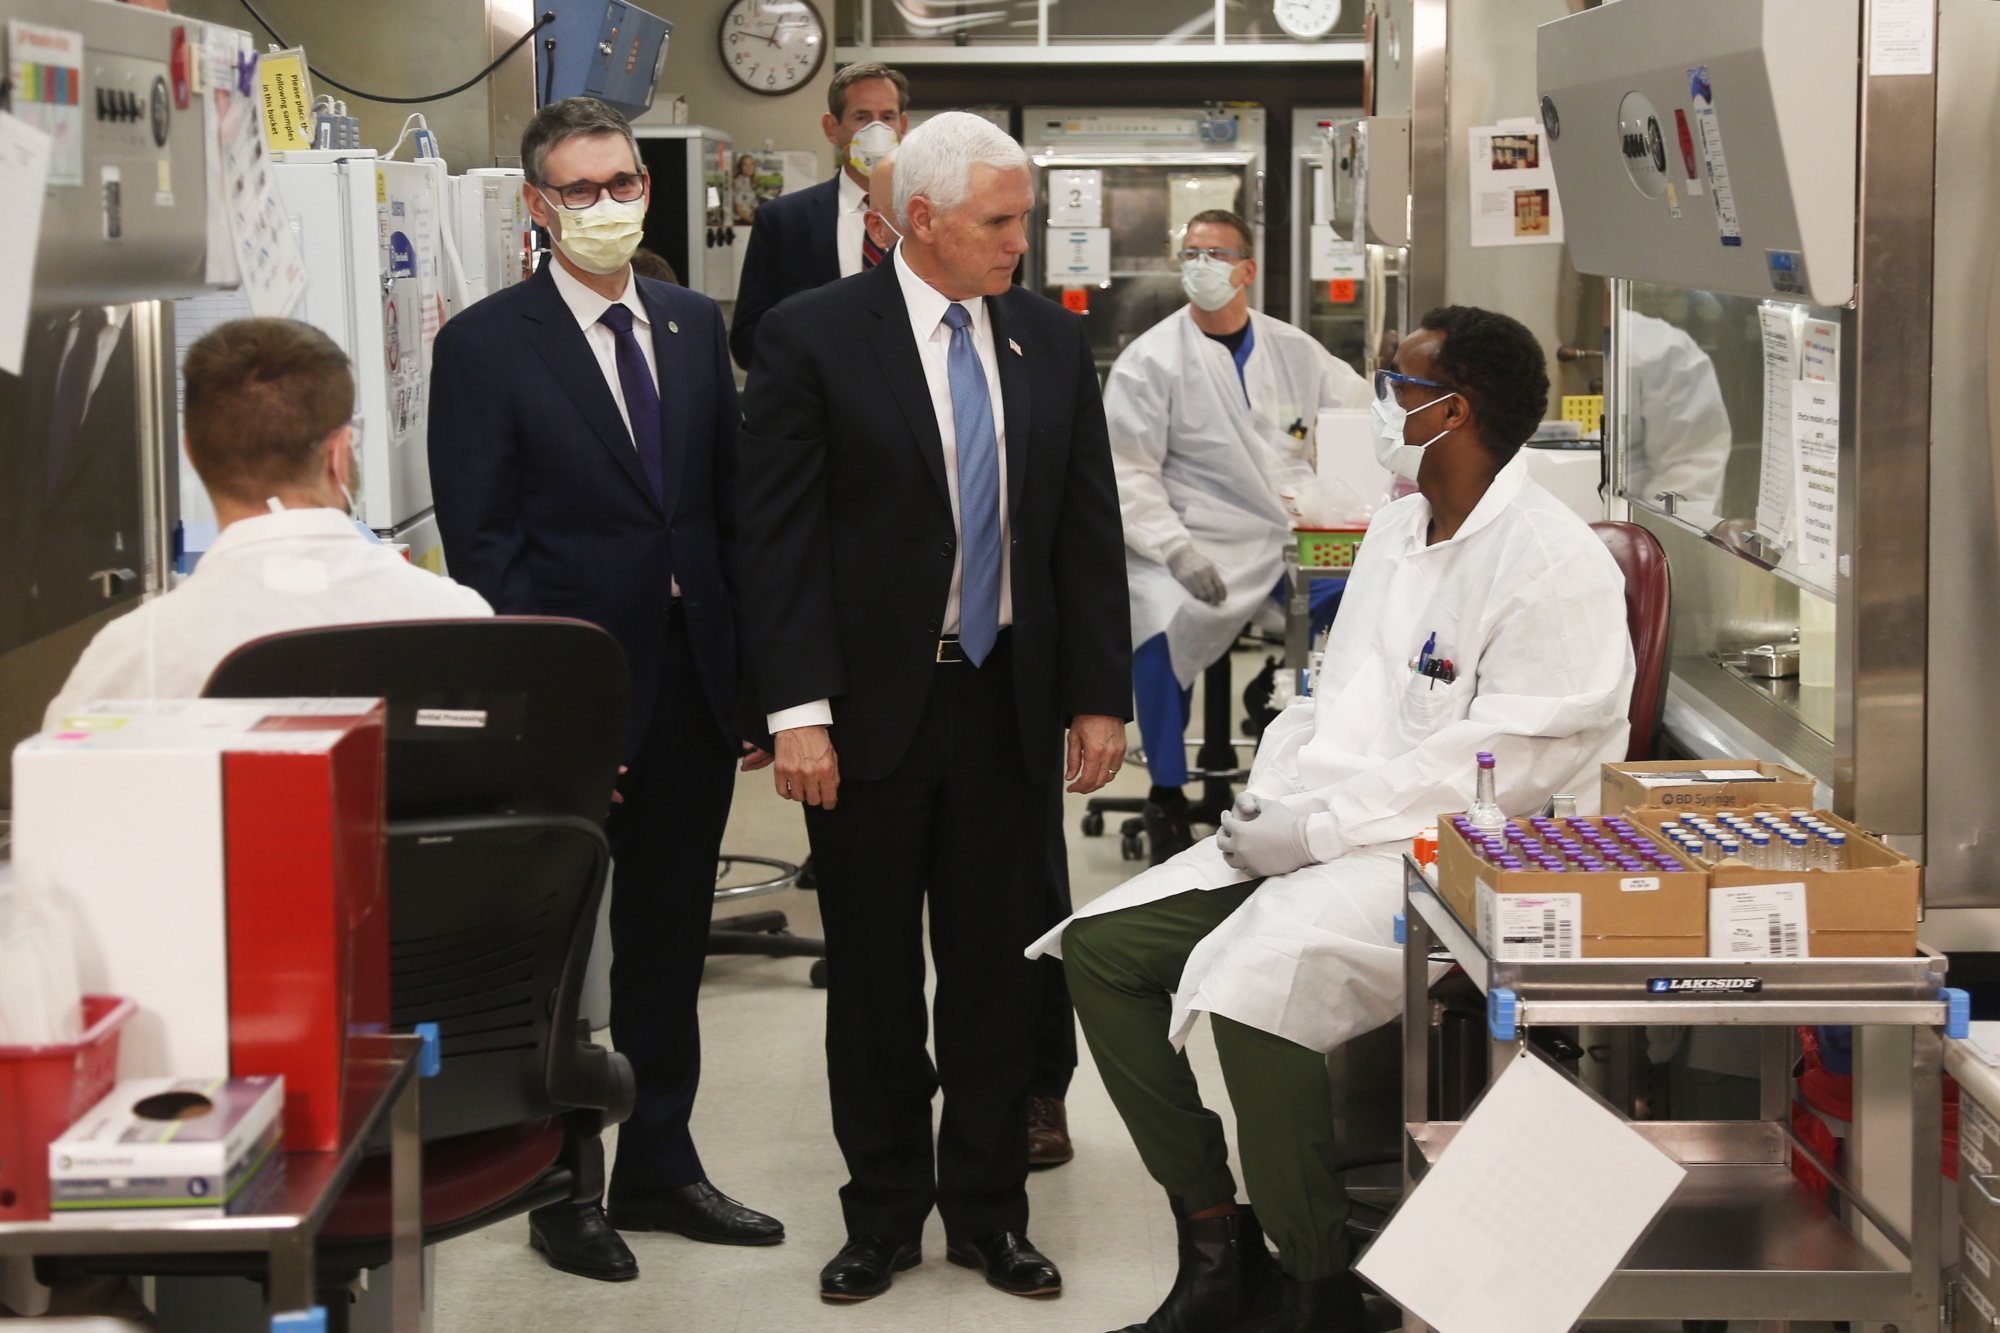 This Time Pence Wears Mask As He Tours Indiana Plant Wtop